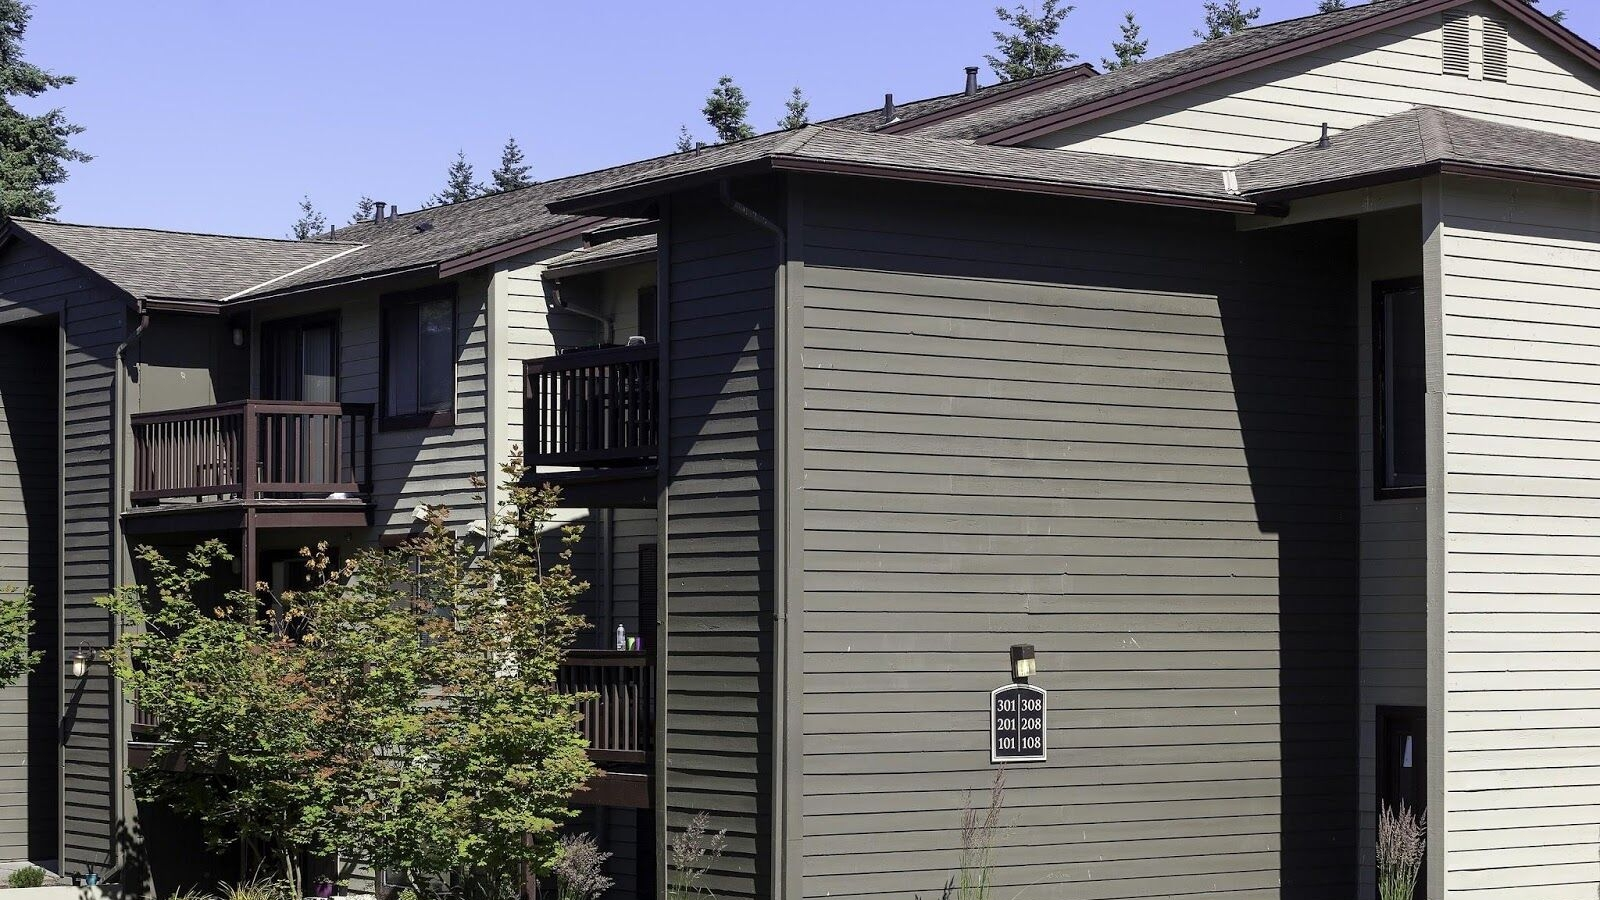 CrownPointeApartments2.jpeg